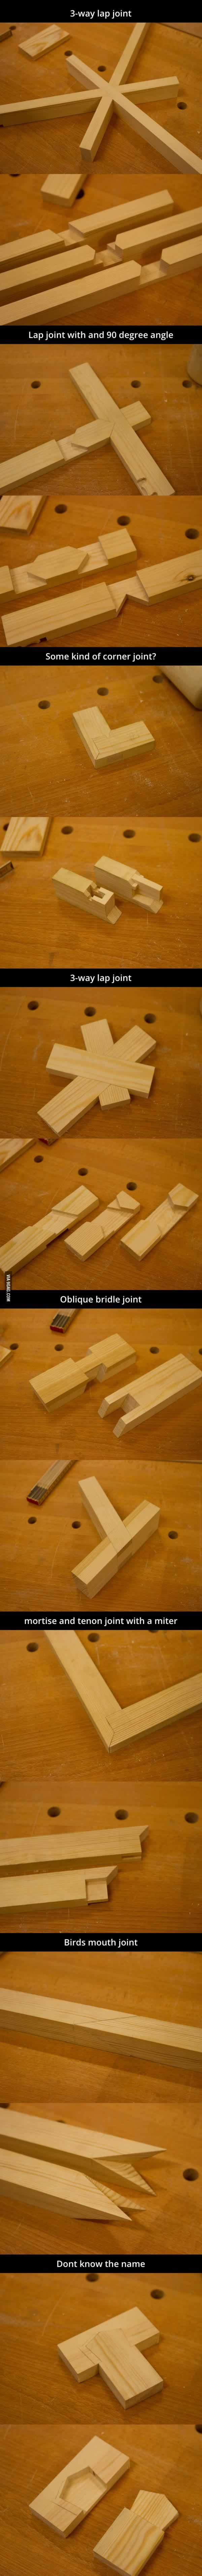 I've been practicing joinery lately. - 9GAG